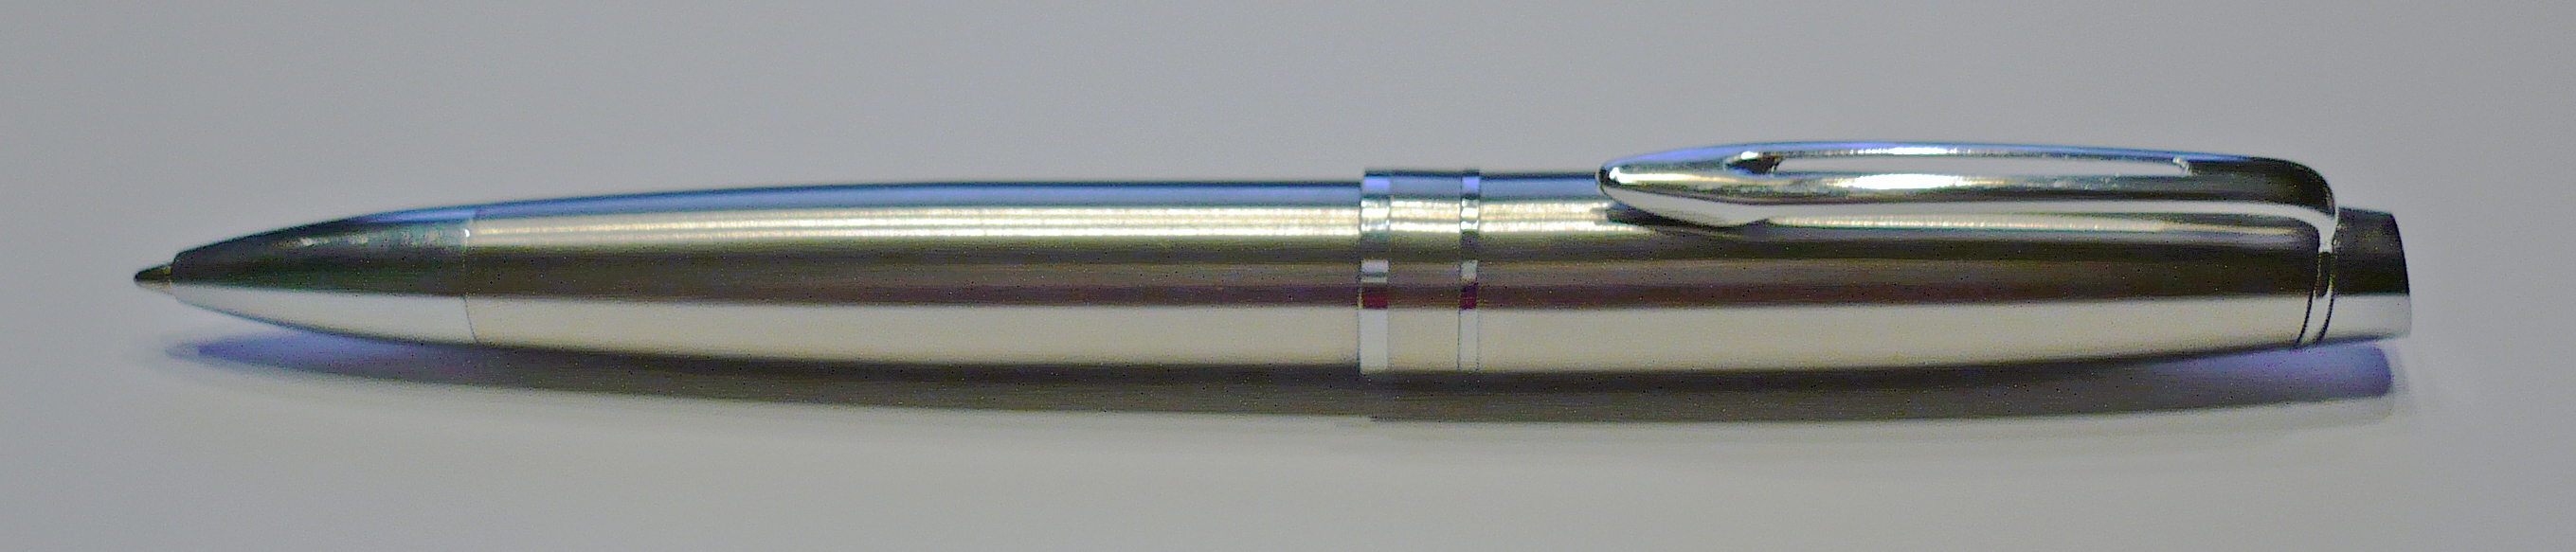 Jinhao_182_twist_action_ballpoint_pen.jp